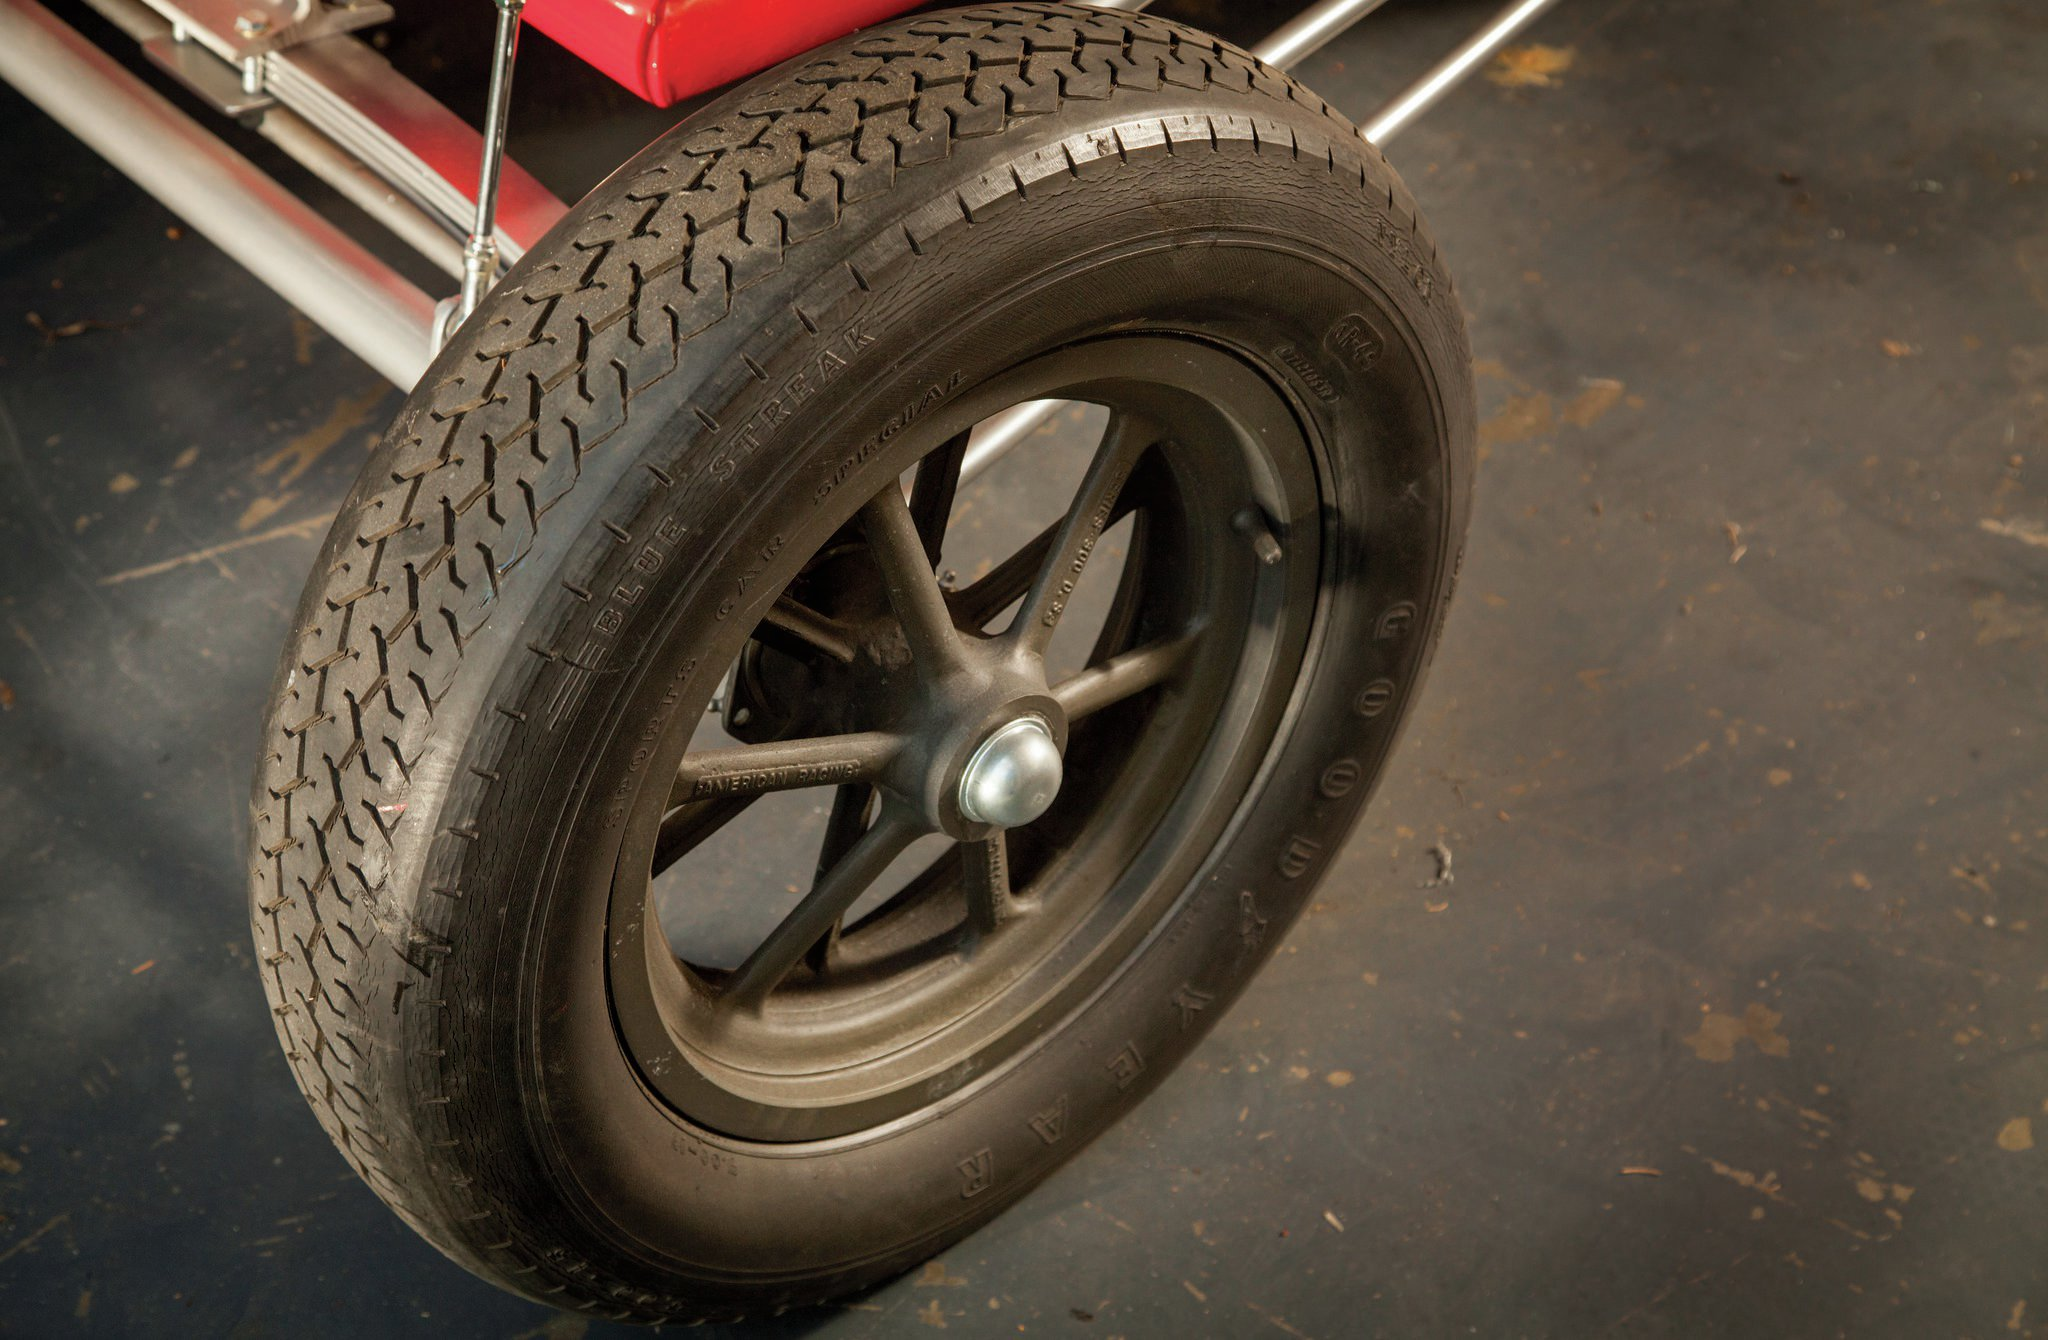 The vintage American 12-spoke front wheels were among the parts found in White's garage and restored to use on the car again.